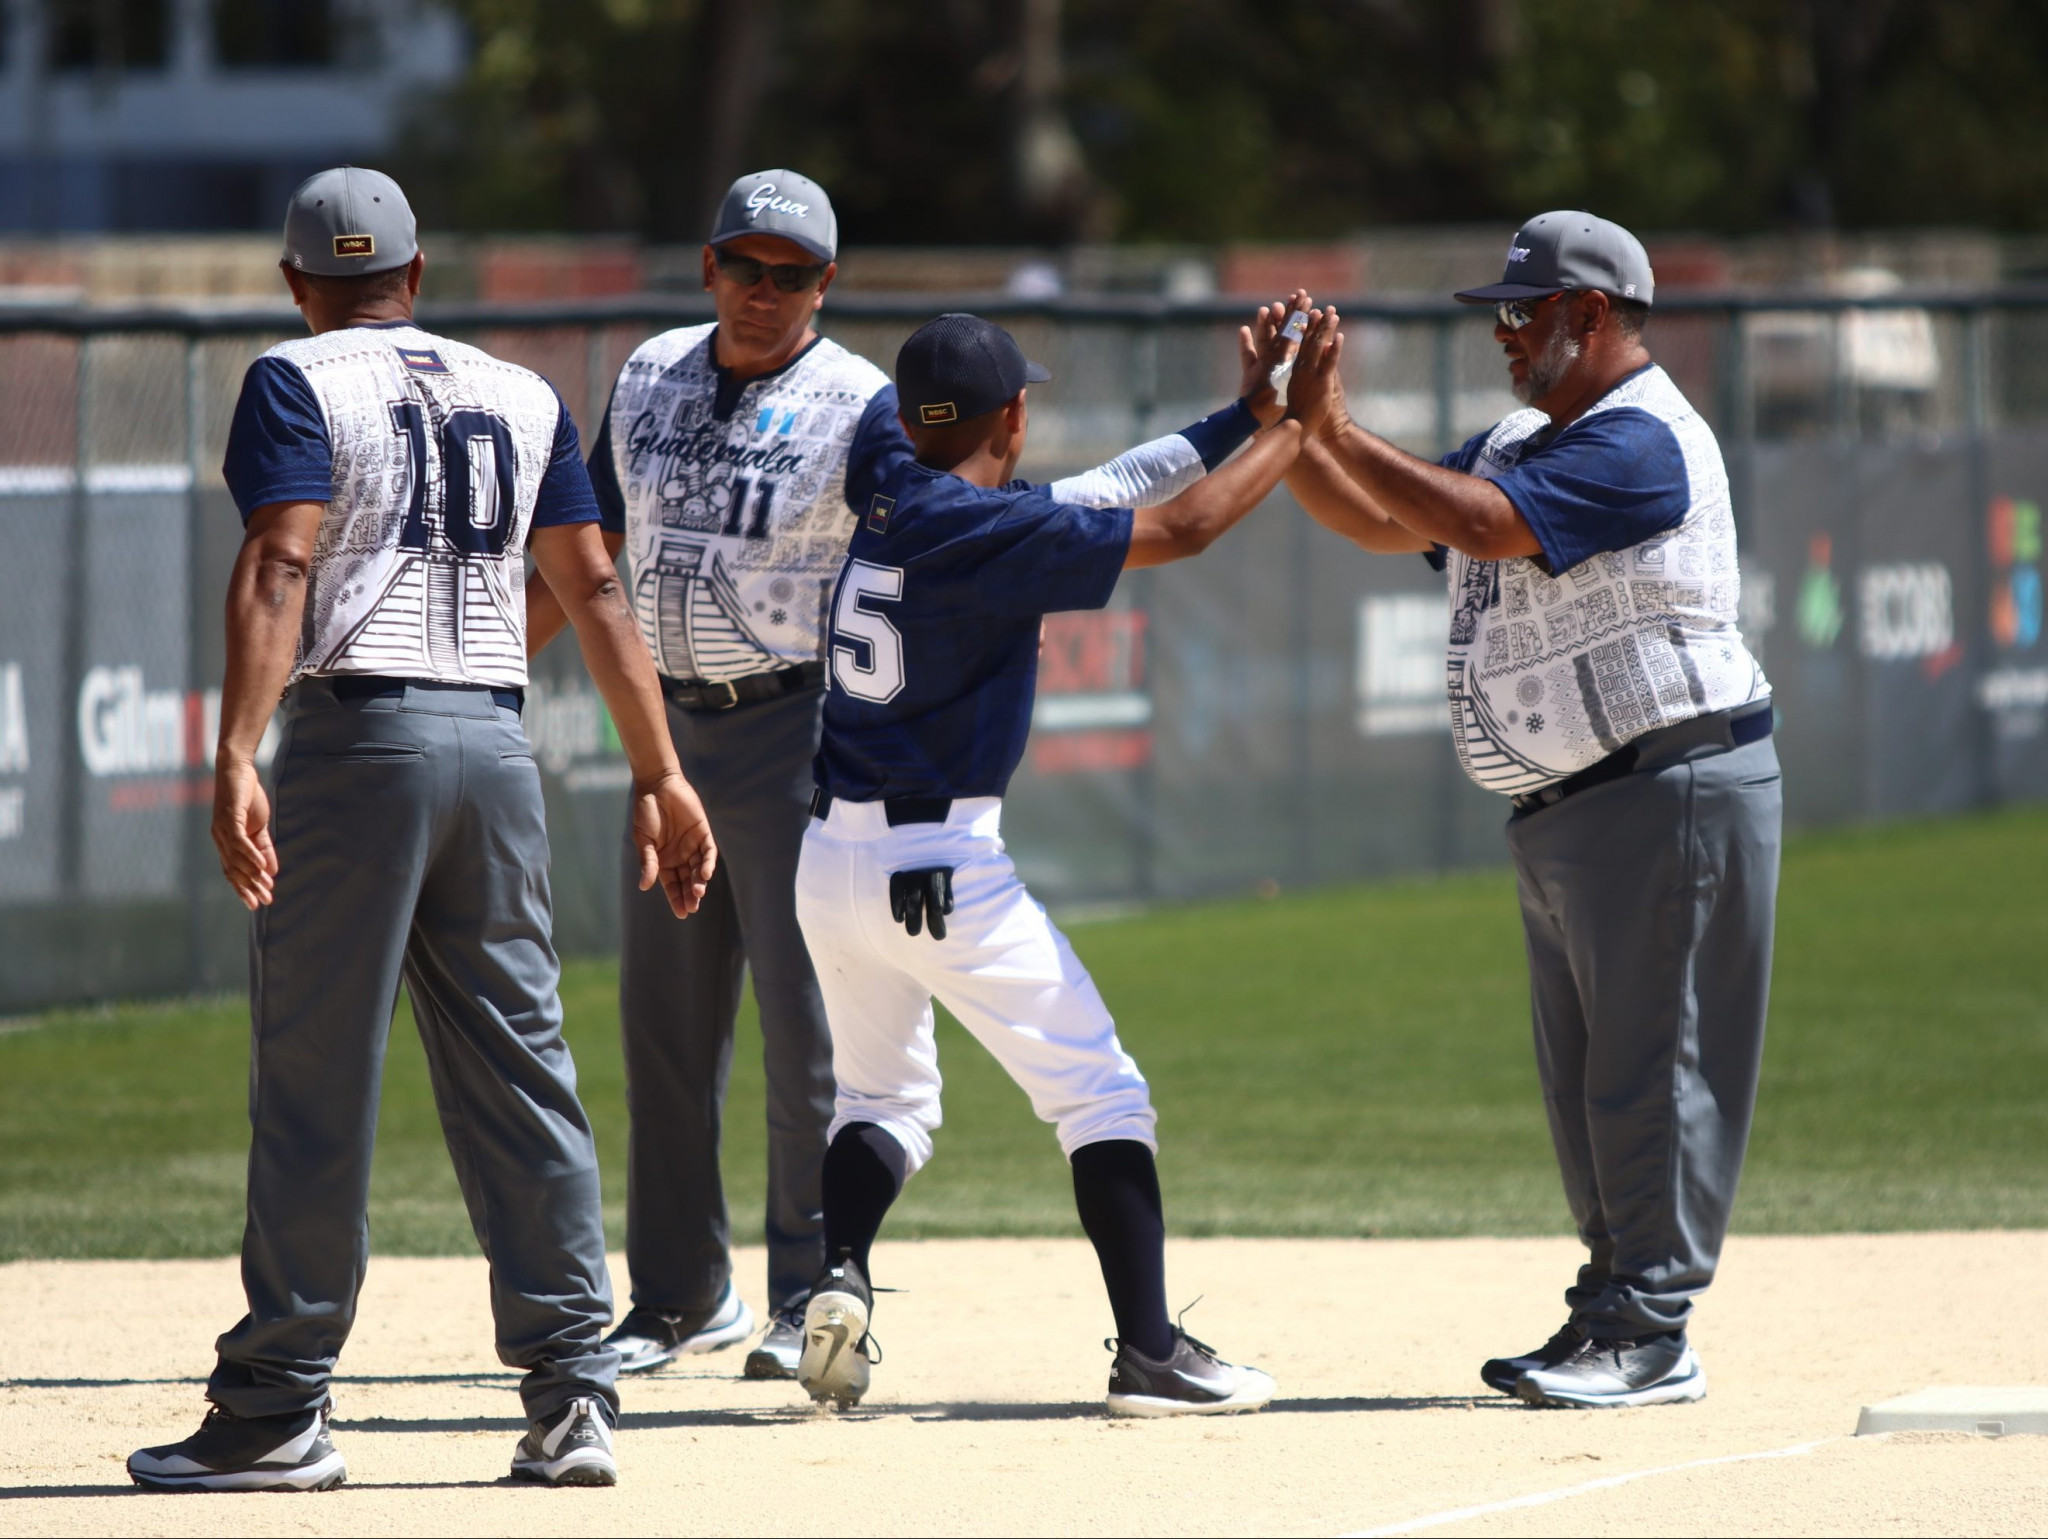 Argentina, Czech Republic and Guatemala complete super round line-up at WBSC Under-18 Men's Softball World Cup